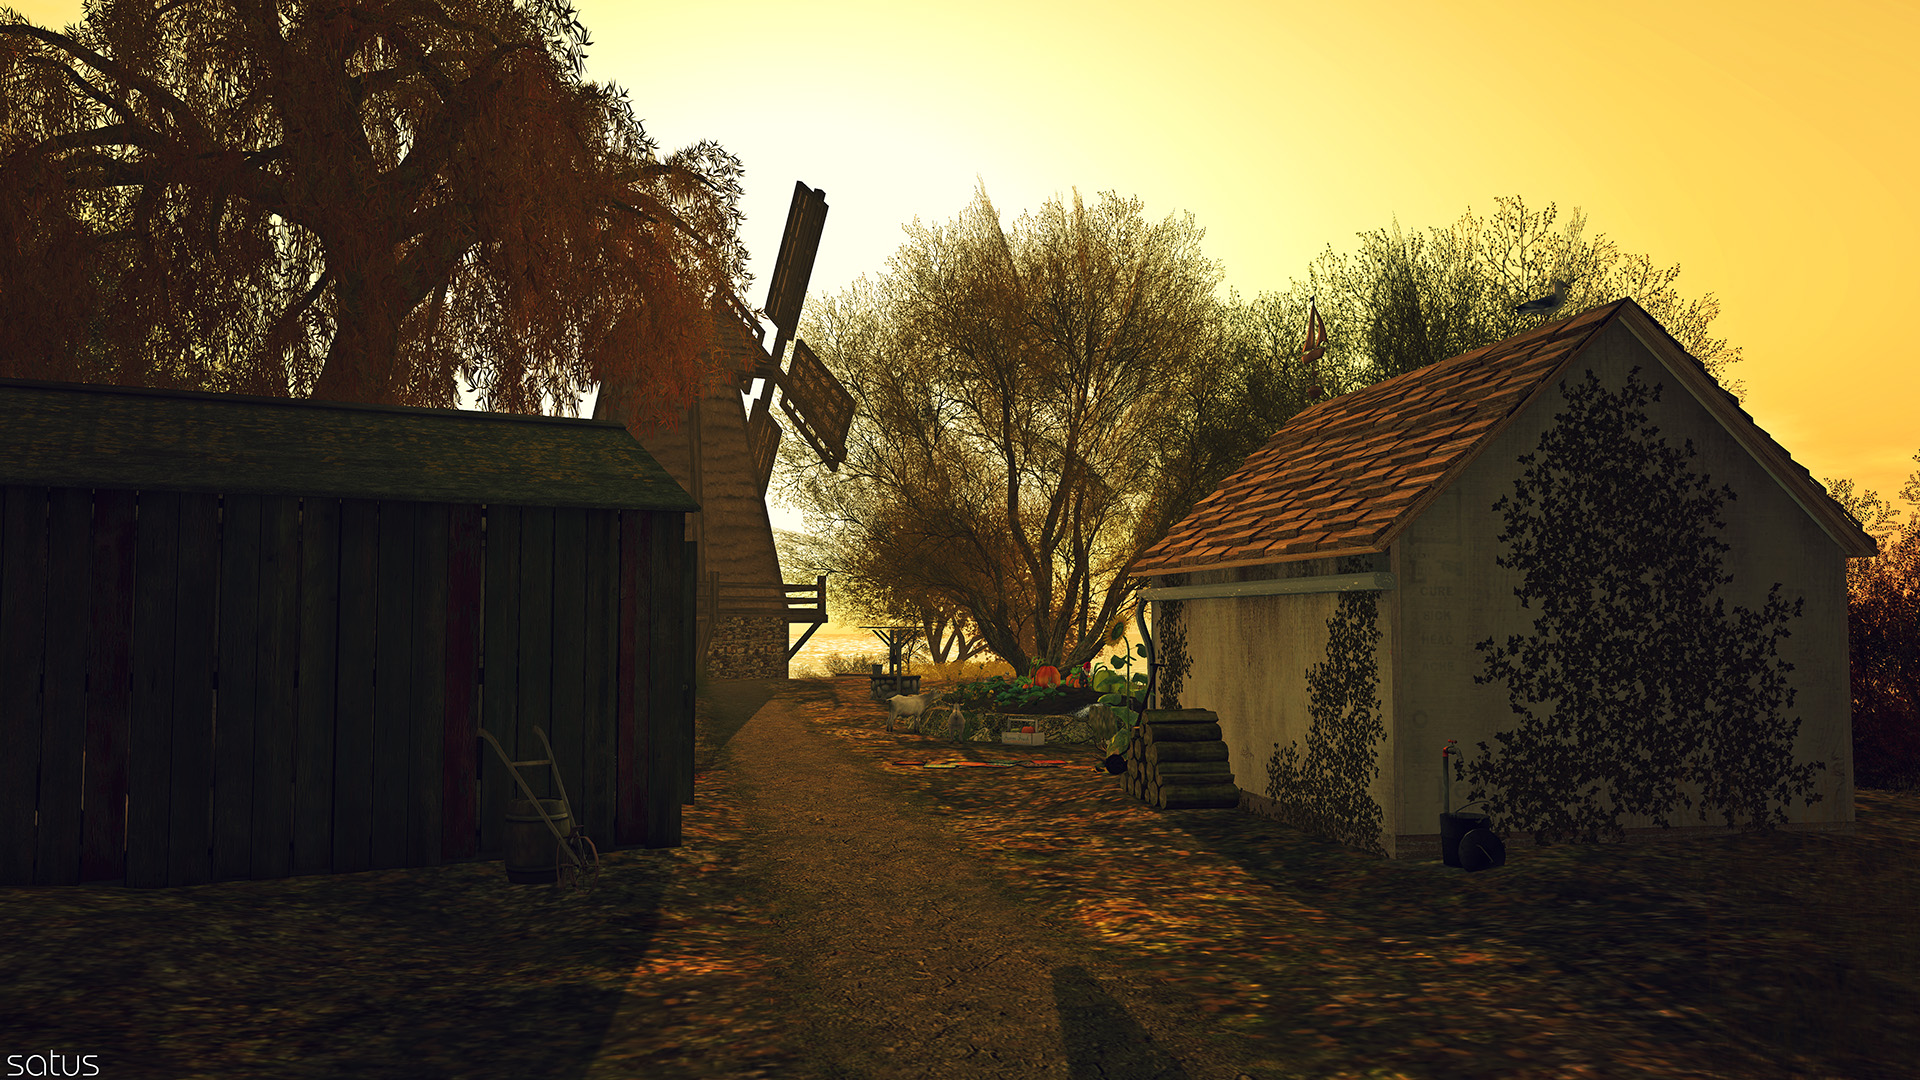 SL Travel: Frisland